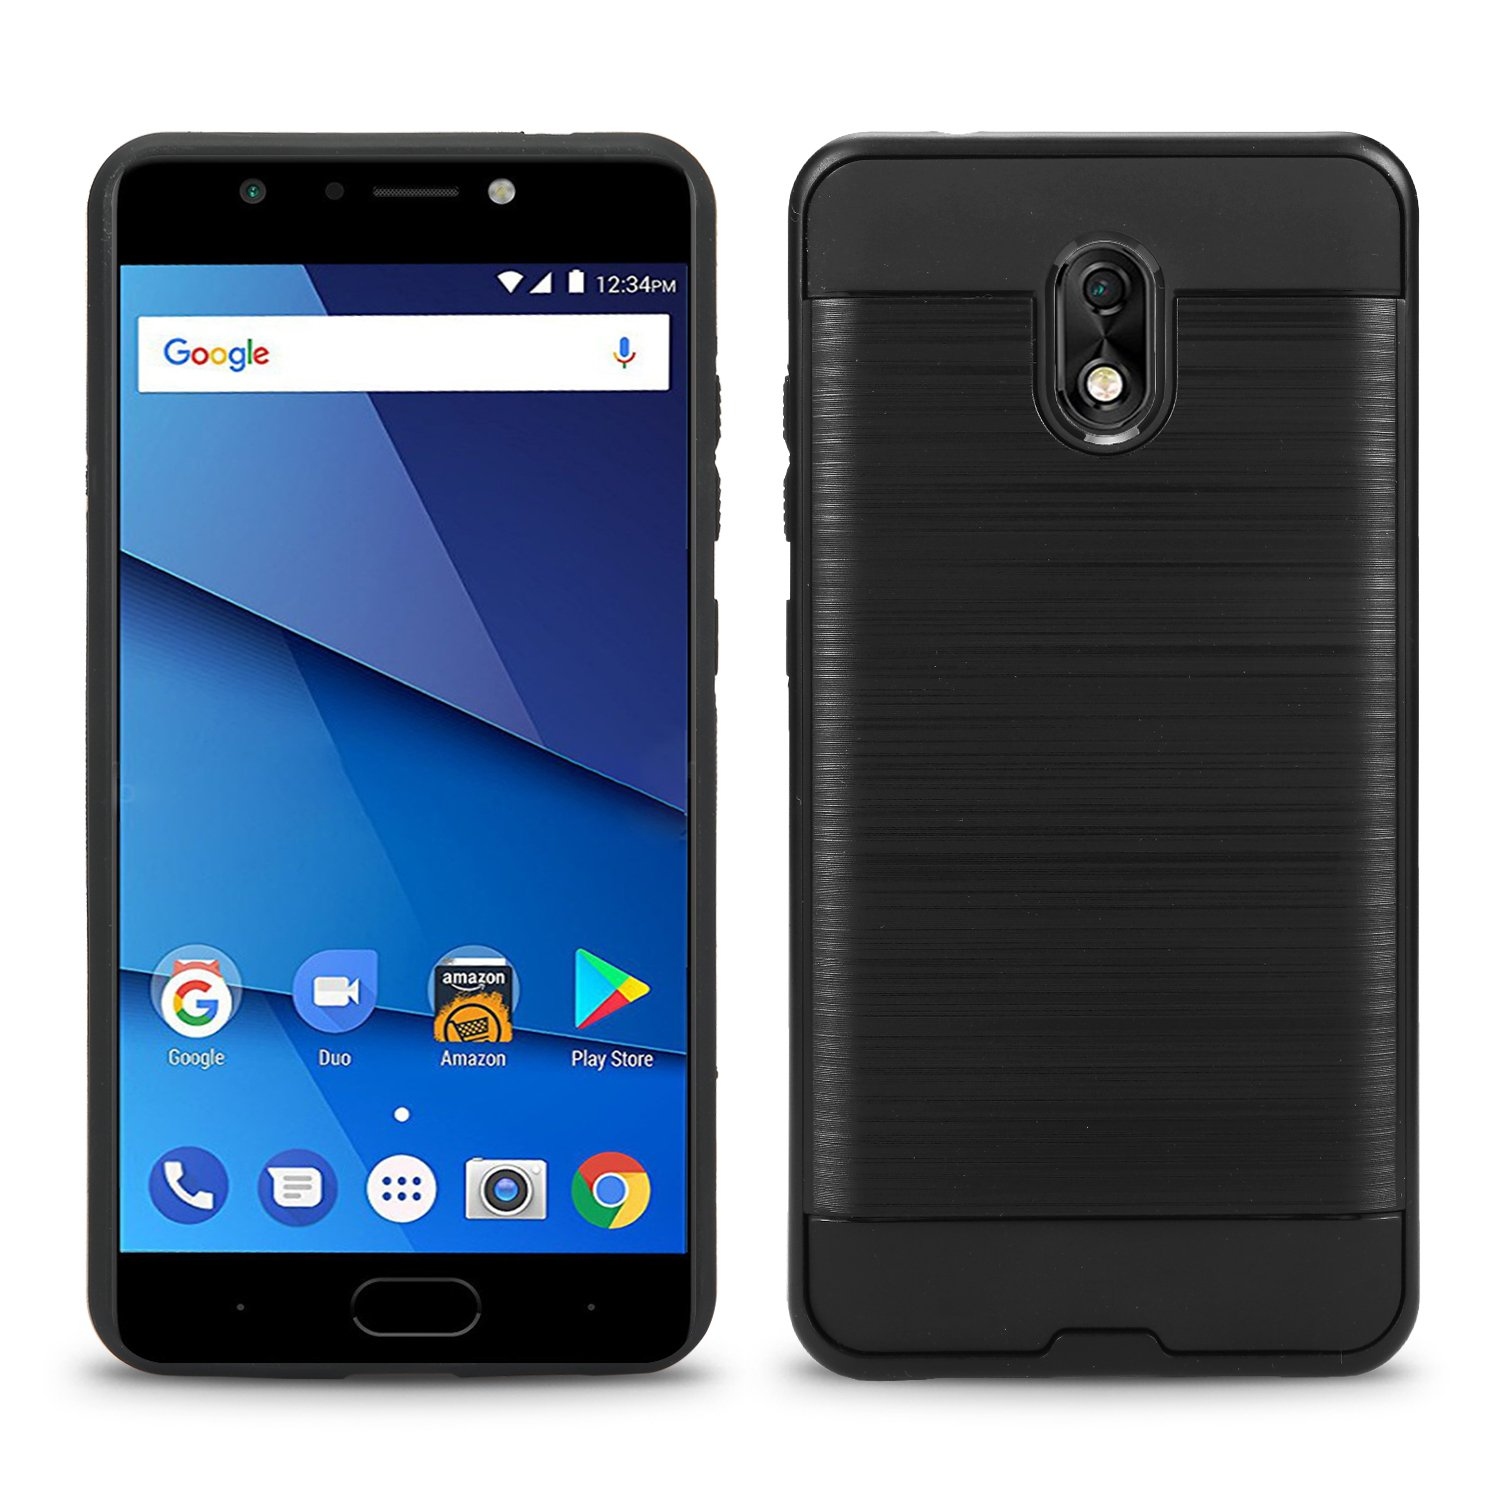 BLU Life One X3 case + Screen Protector, (L0150WW) 5.5 inch case Tough Hybrid + Dual Layer Shockproof Drop Protection Metallic Brushed Case Cover for BLU Life One X3 case (VGC Black + SP) by NewFrontier (Image #1)